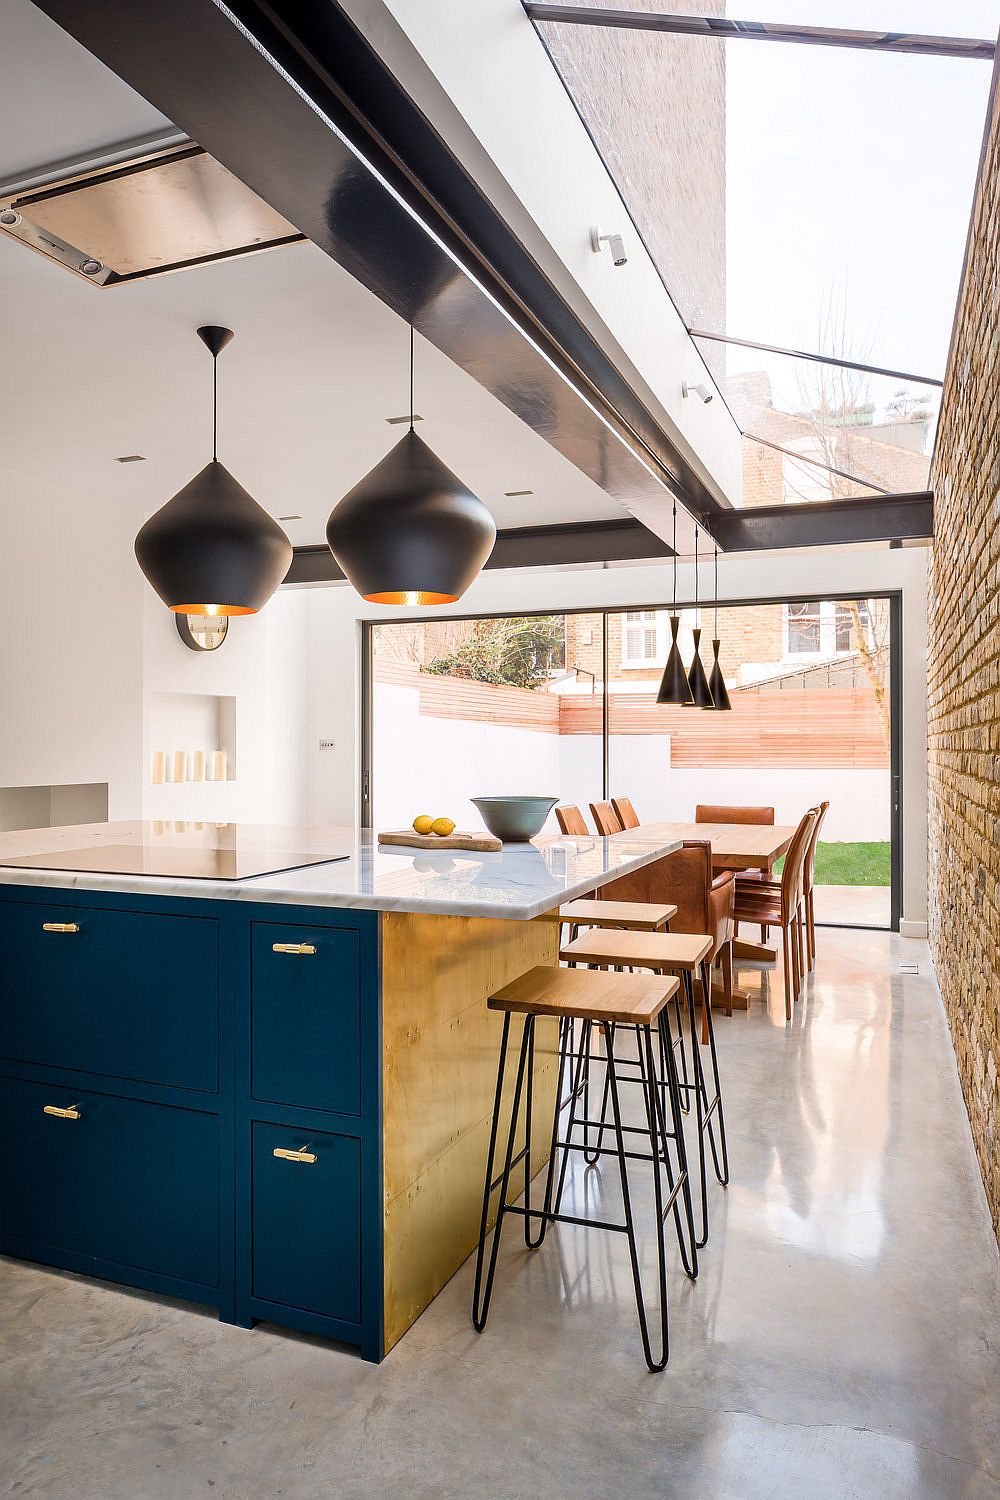 Skylight, glass doors bring natural light into this kitchen and dining area while Tom Dixon pendants take over after sunset